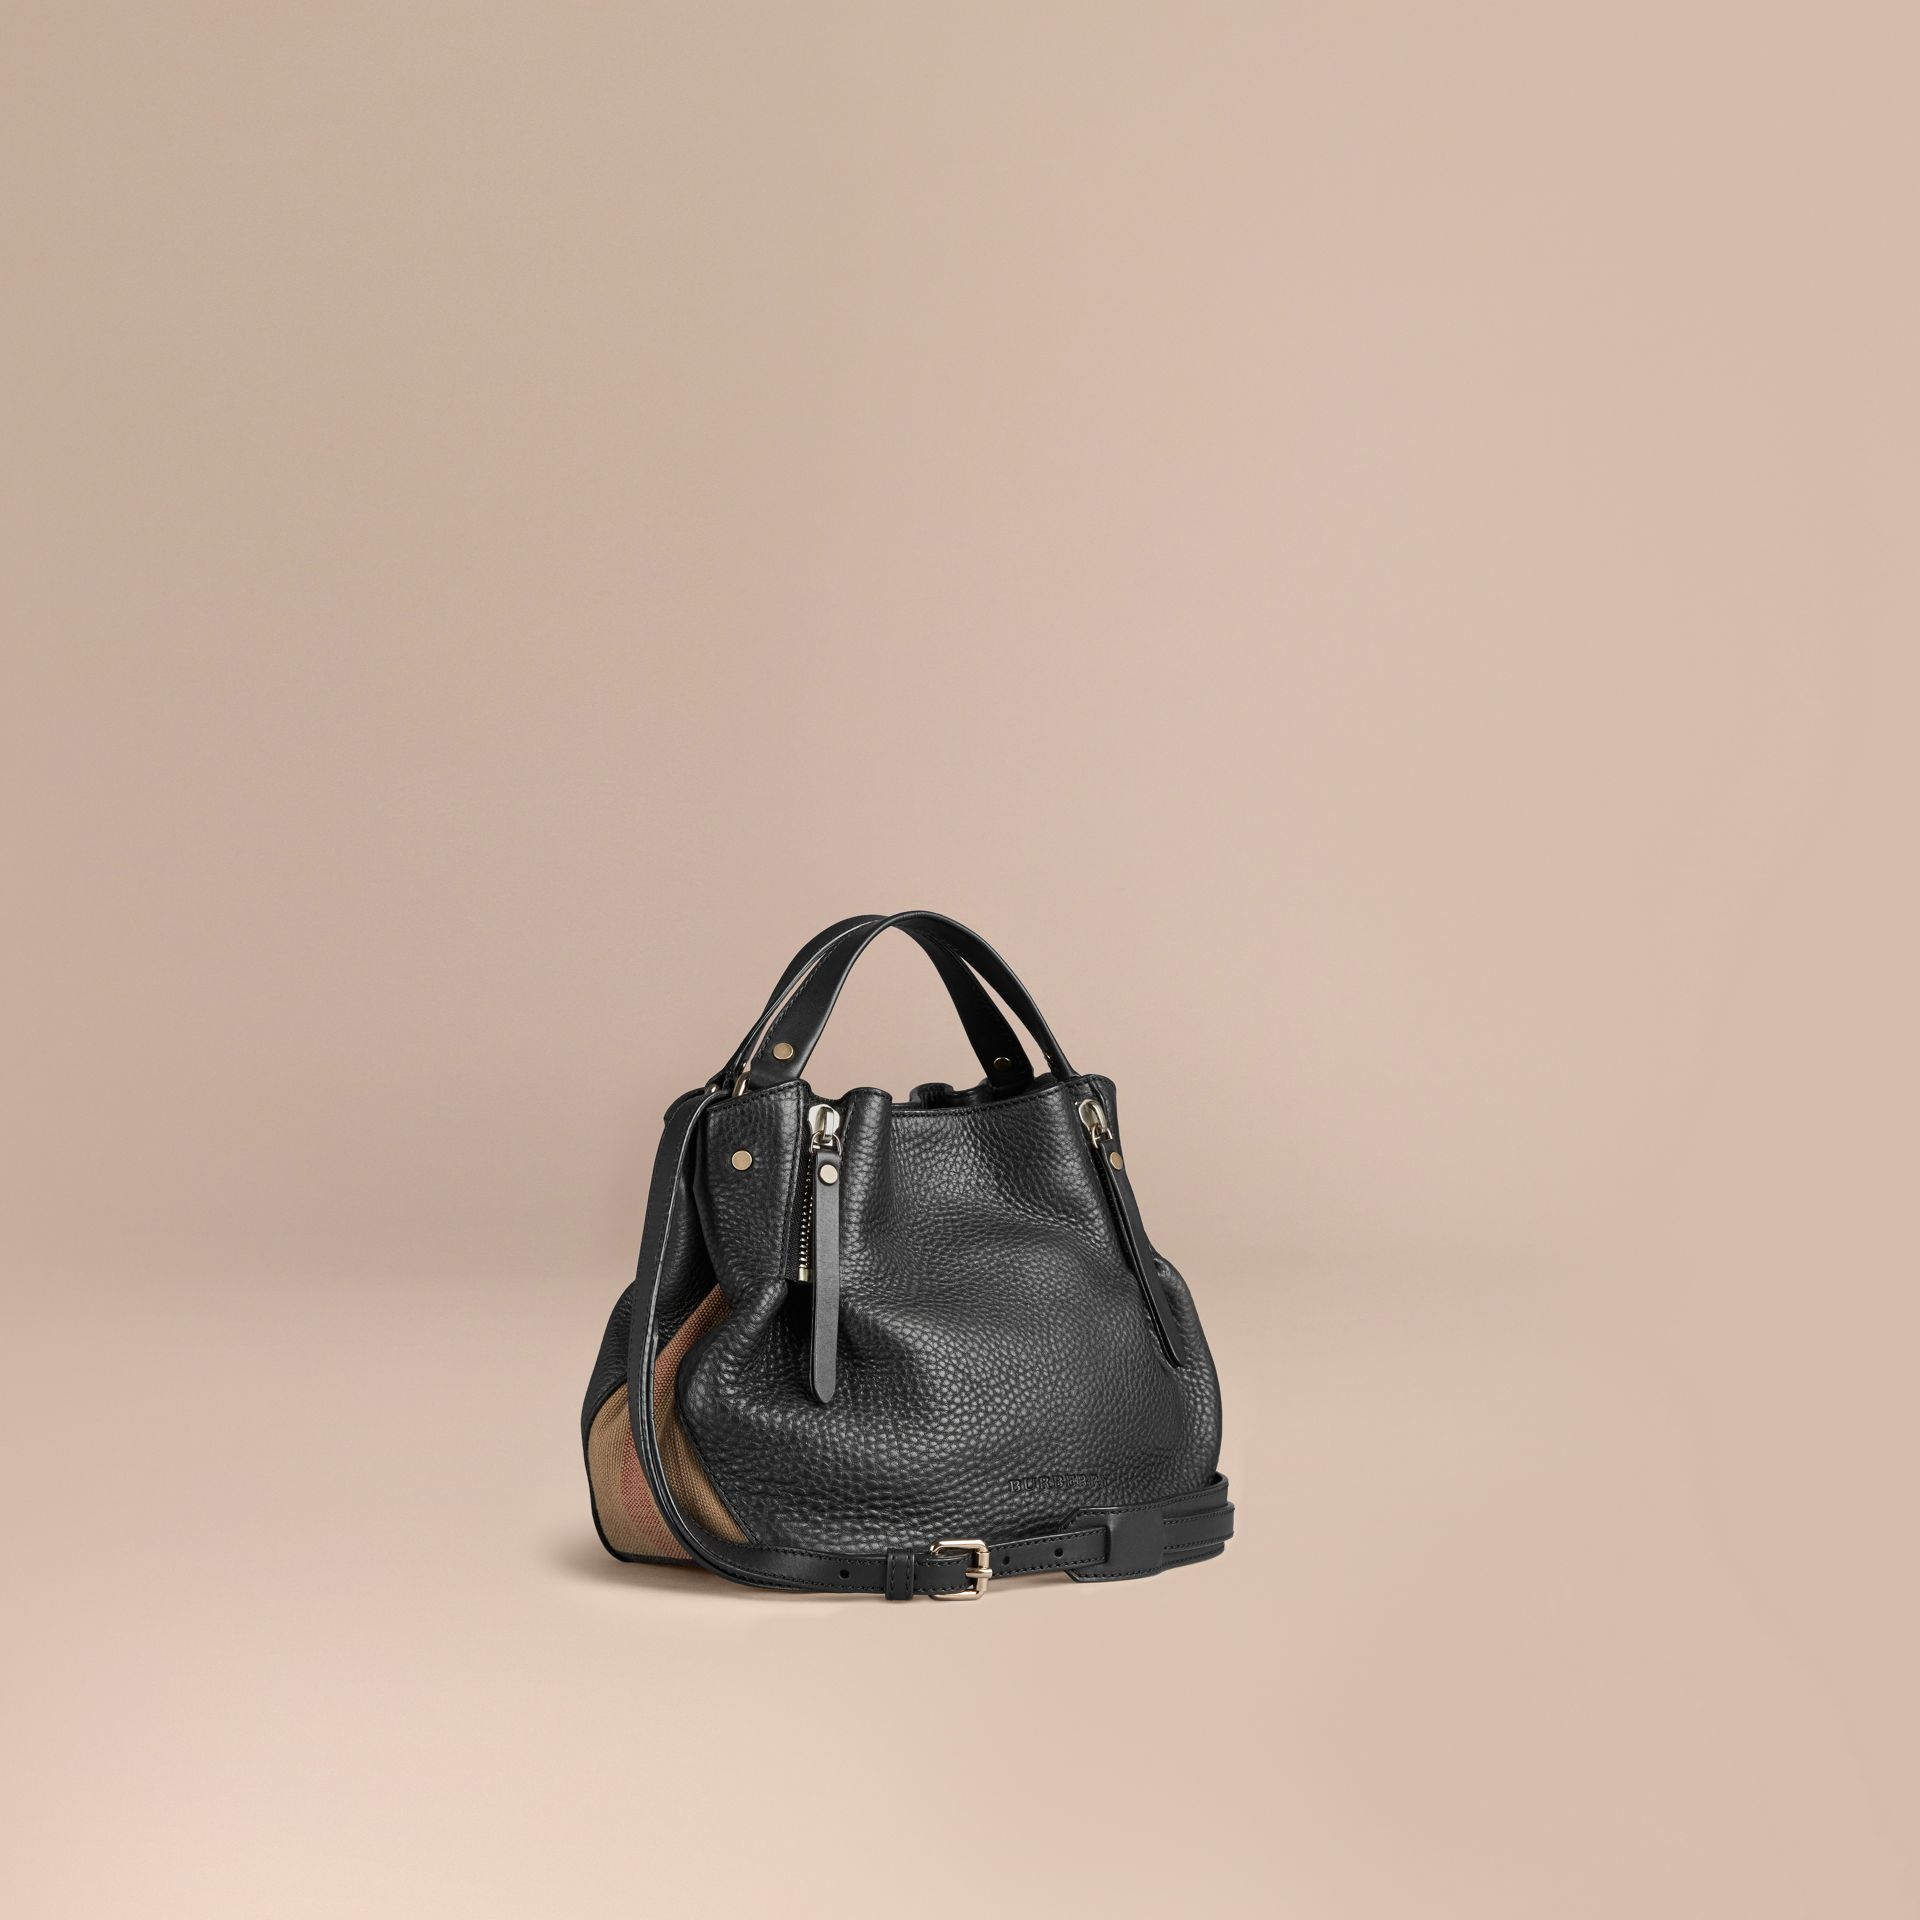 Black Small Check Detail Leather Tote Bag Black - gallery image 1